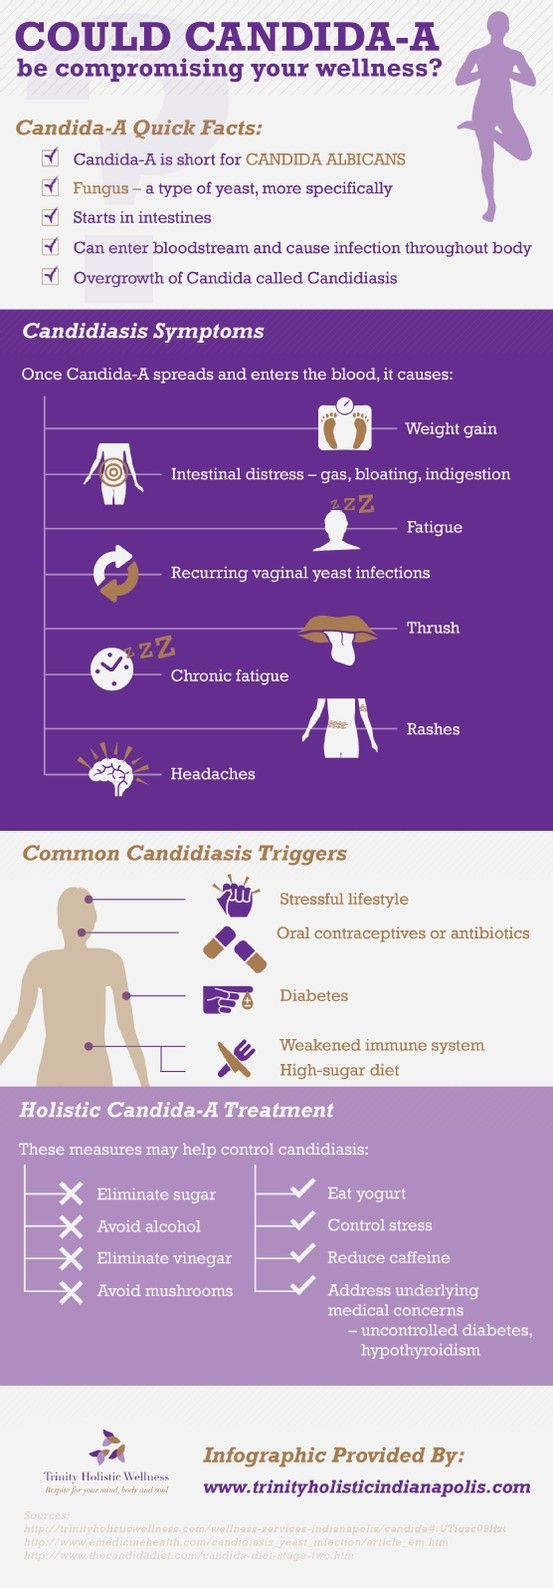 Did you know that Candida-A causes weight gain, intestinal distress, fatigue, thrush, chronic fatigue, and headaches once it is in the blood stream? Learn more about what this means for your health in this infographic from a holistic health center in Indianapolis. Source: http://www.trinityholisticindianapolis.com/671915/2013/03/28/could-candida-a-be-compromising-your-wellness-infographic.html